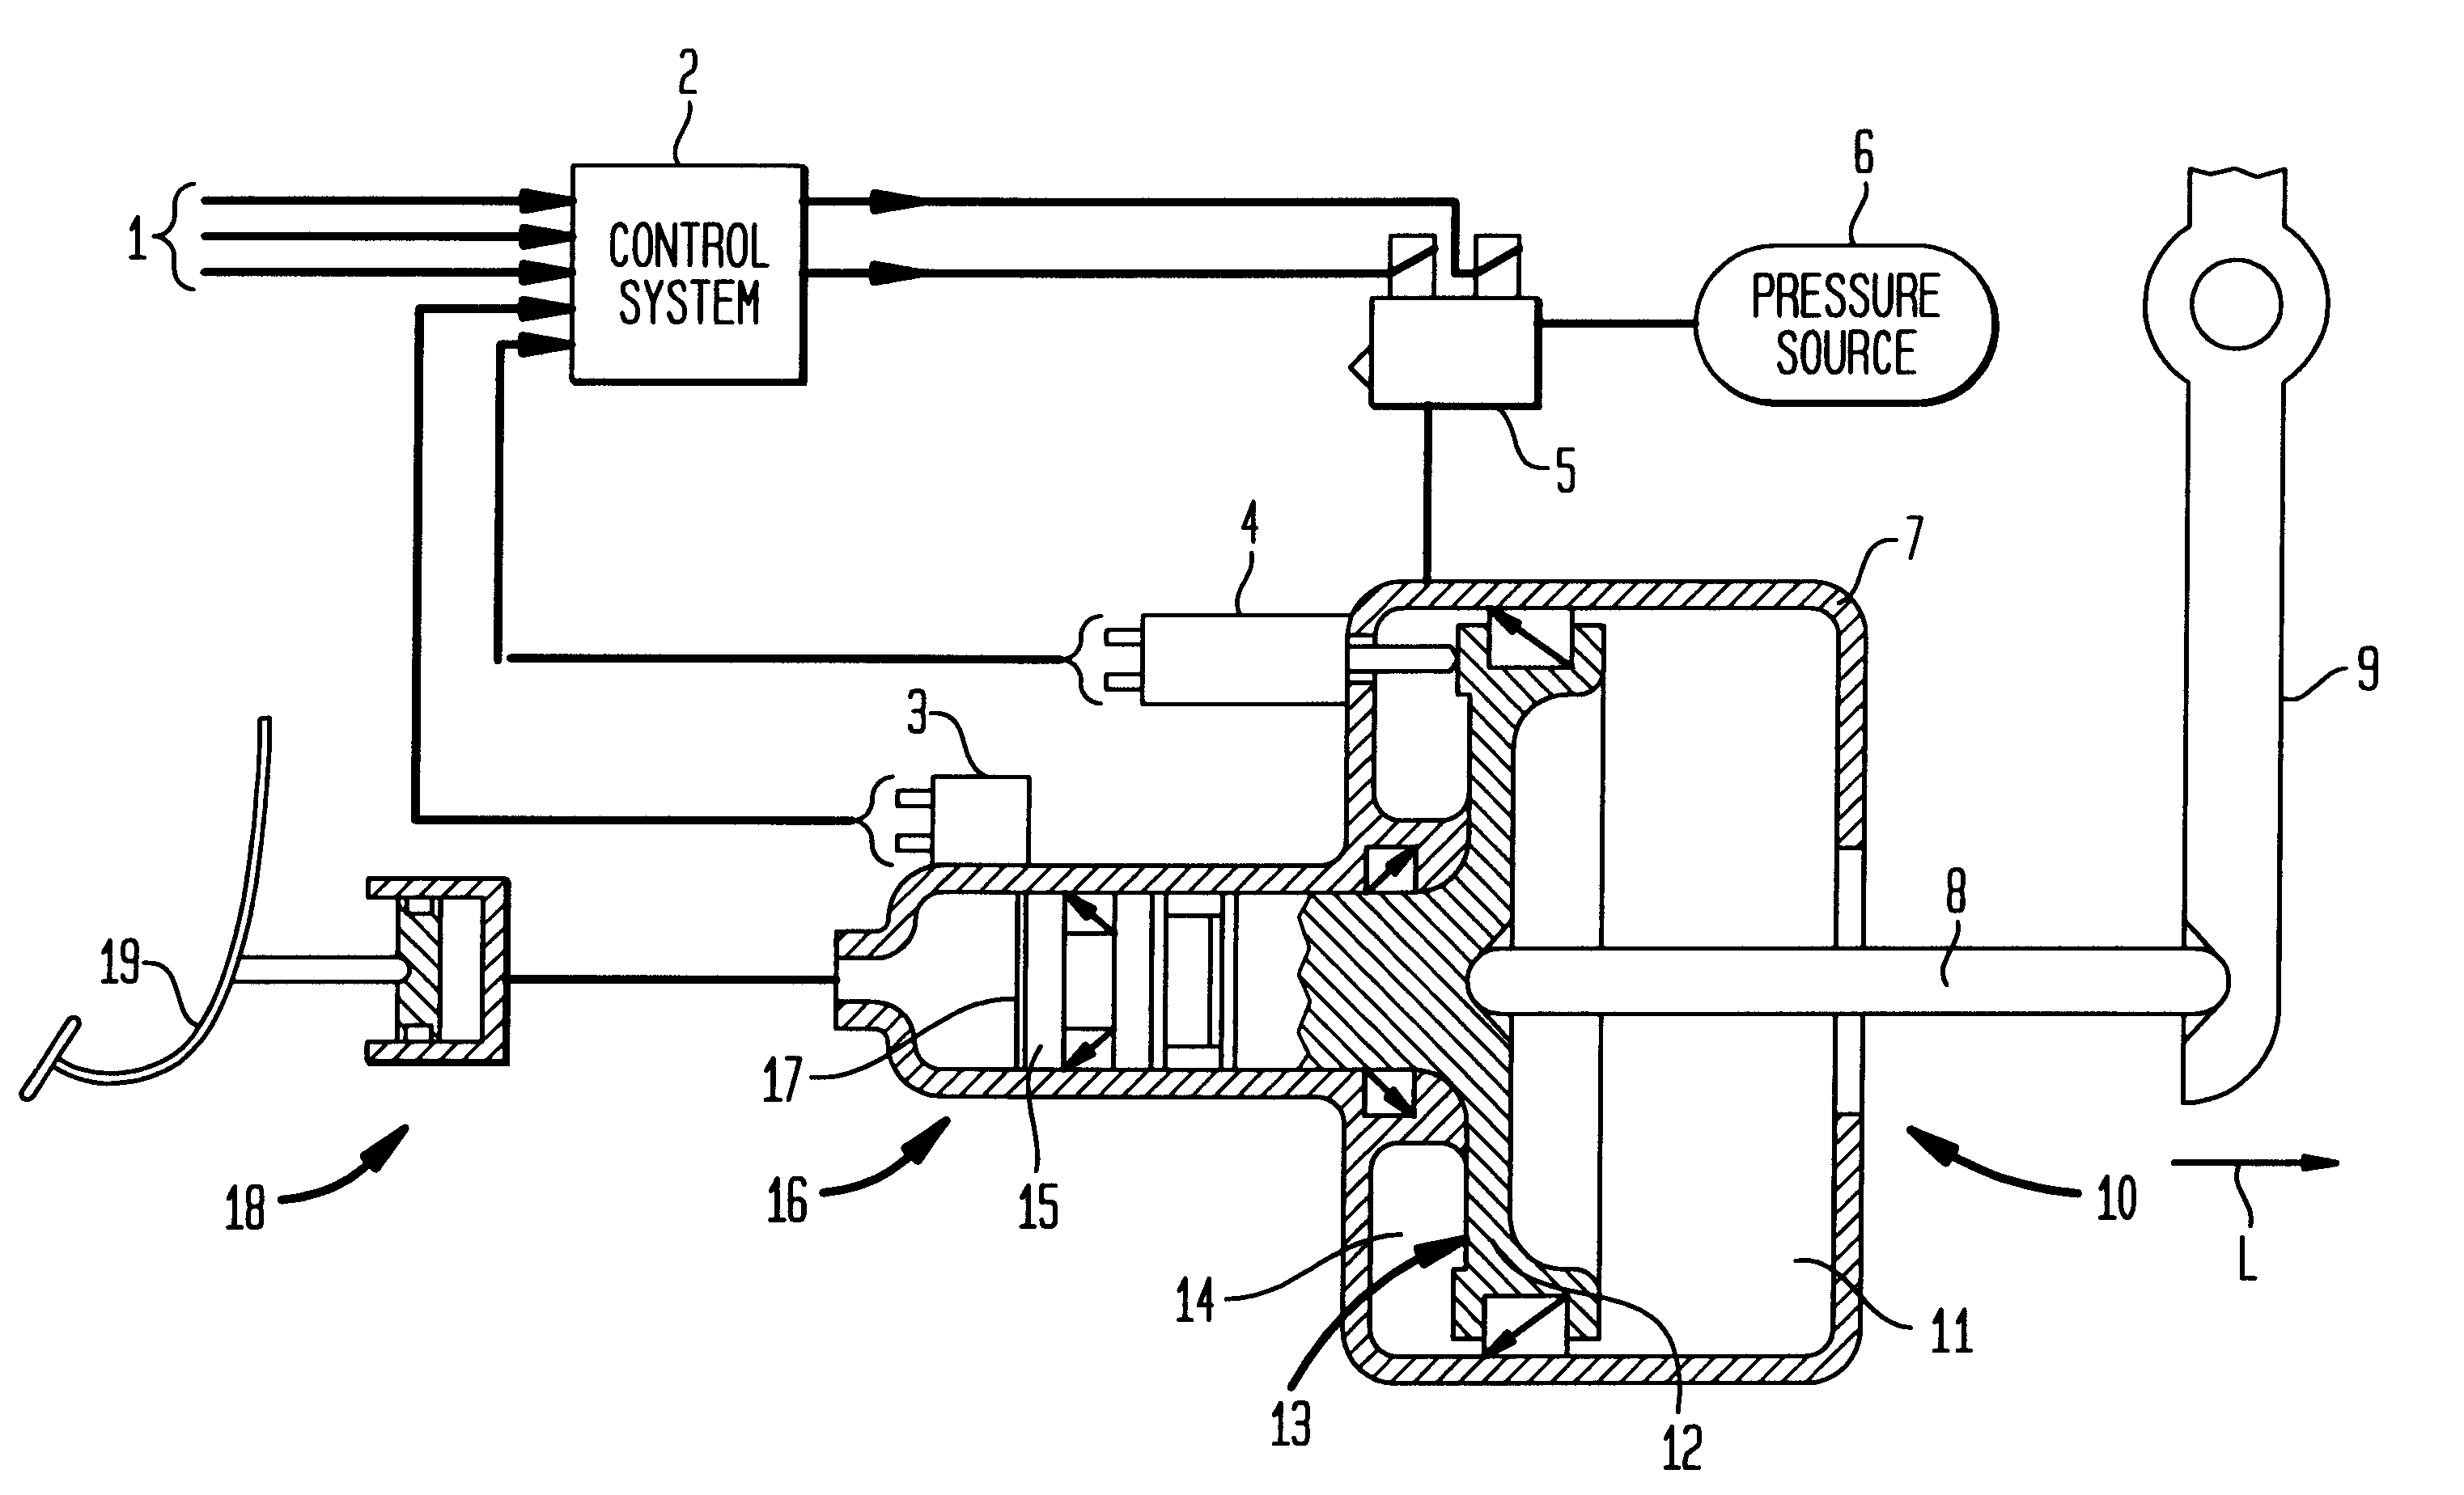 Hydraulic Clutch System Diagram : Patent us actuating mechanism for a clutch